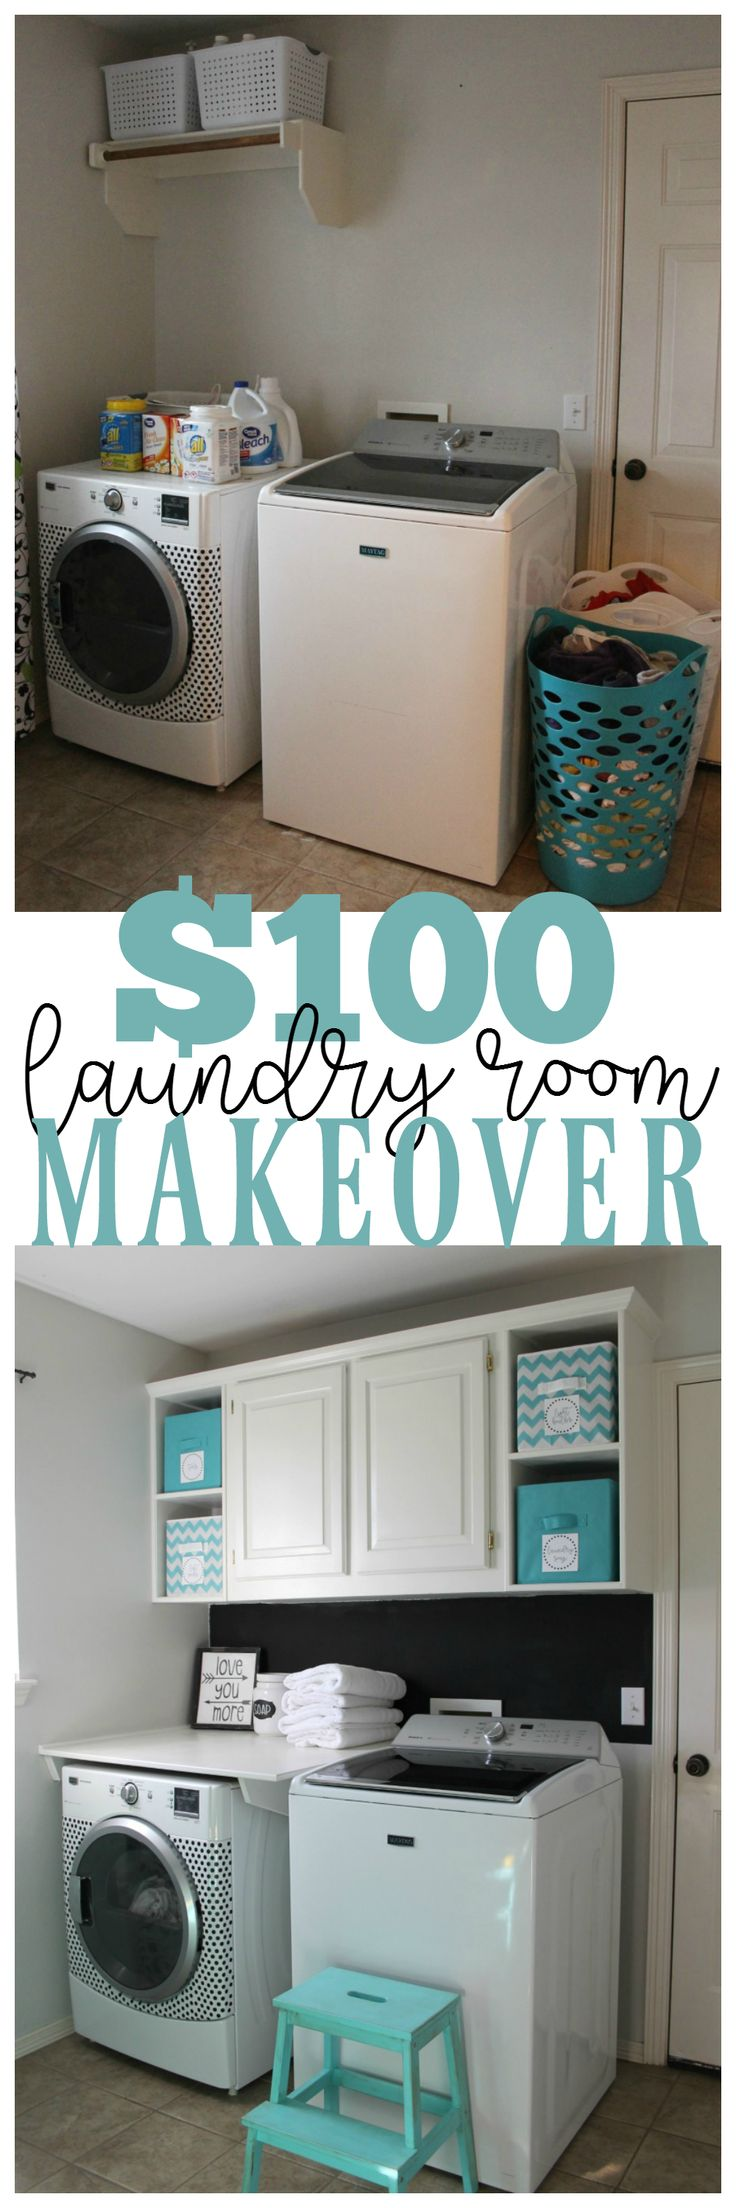 Laundry Room Makeover for Under $100